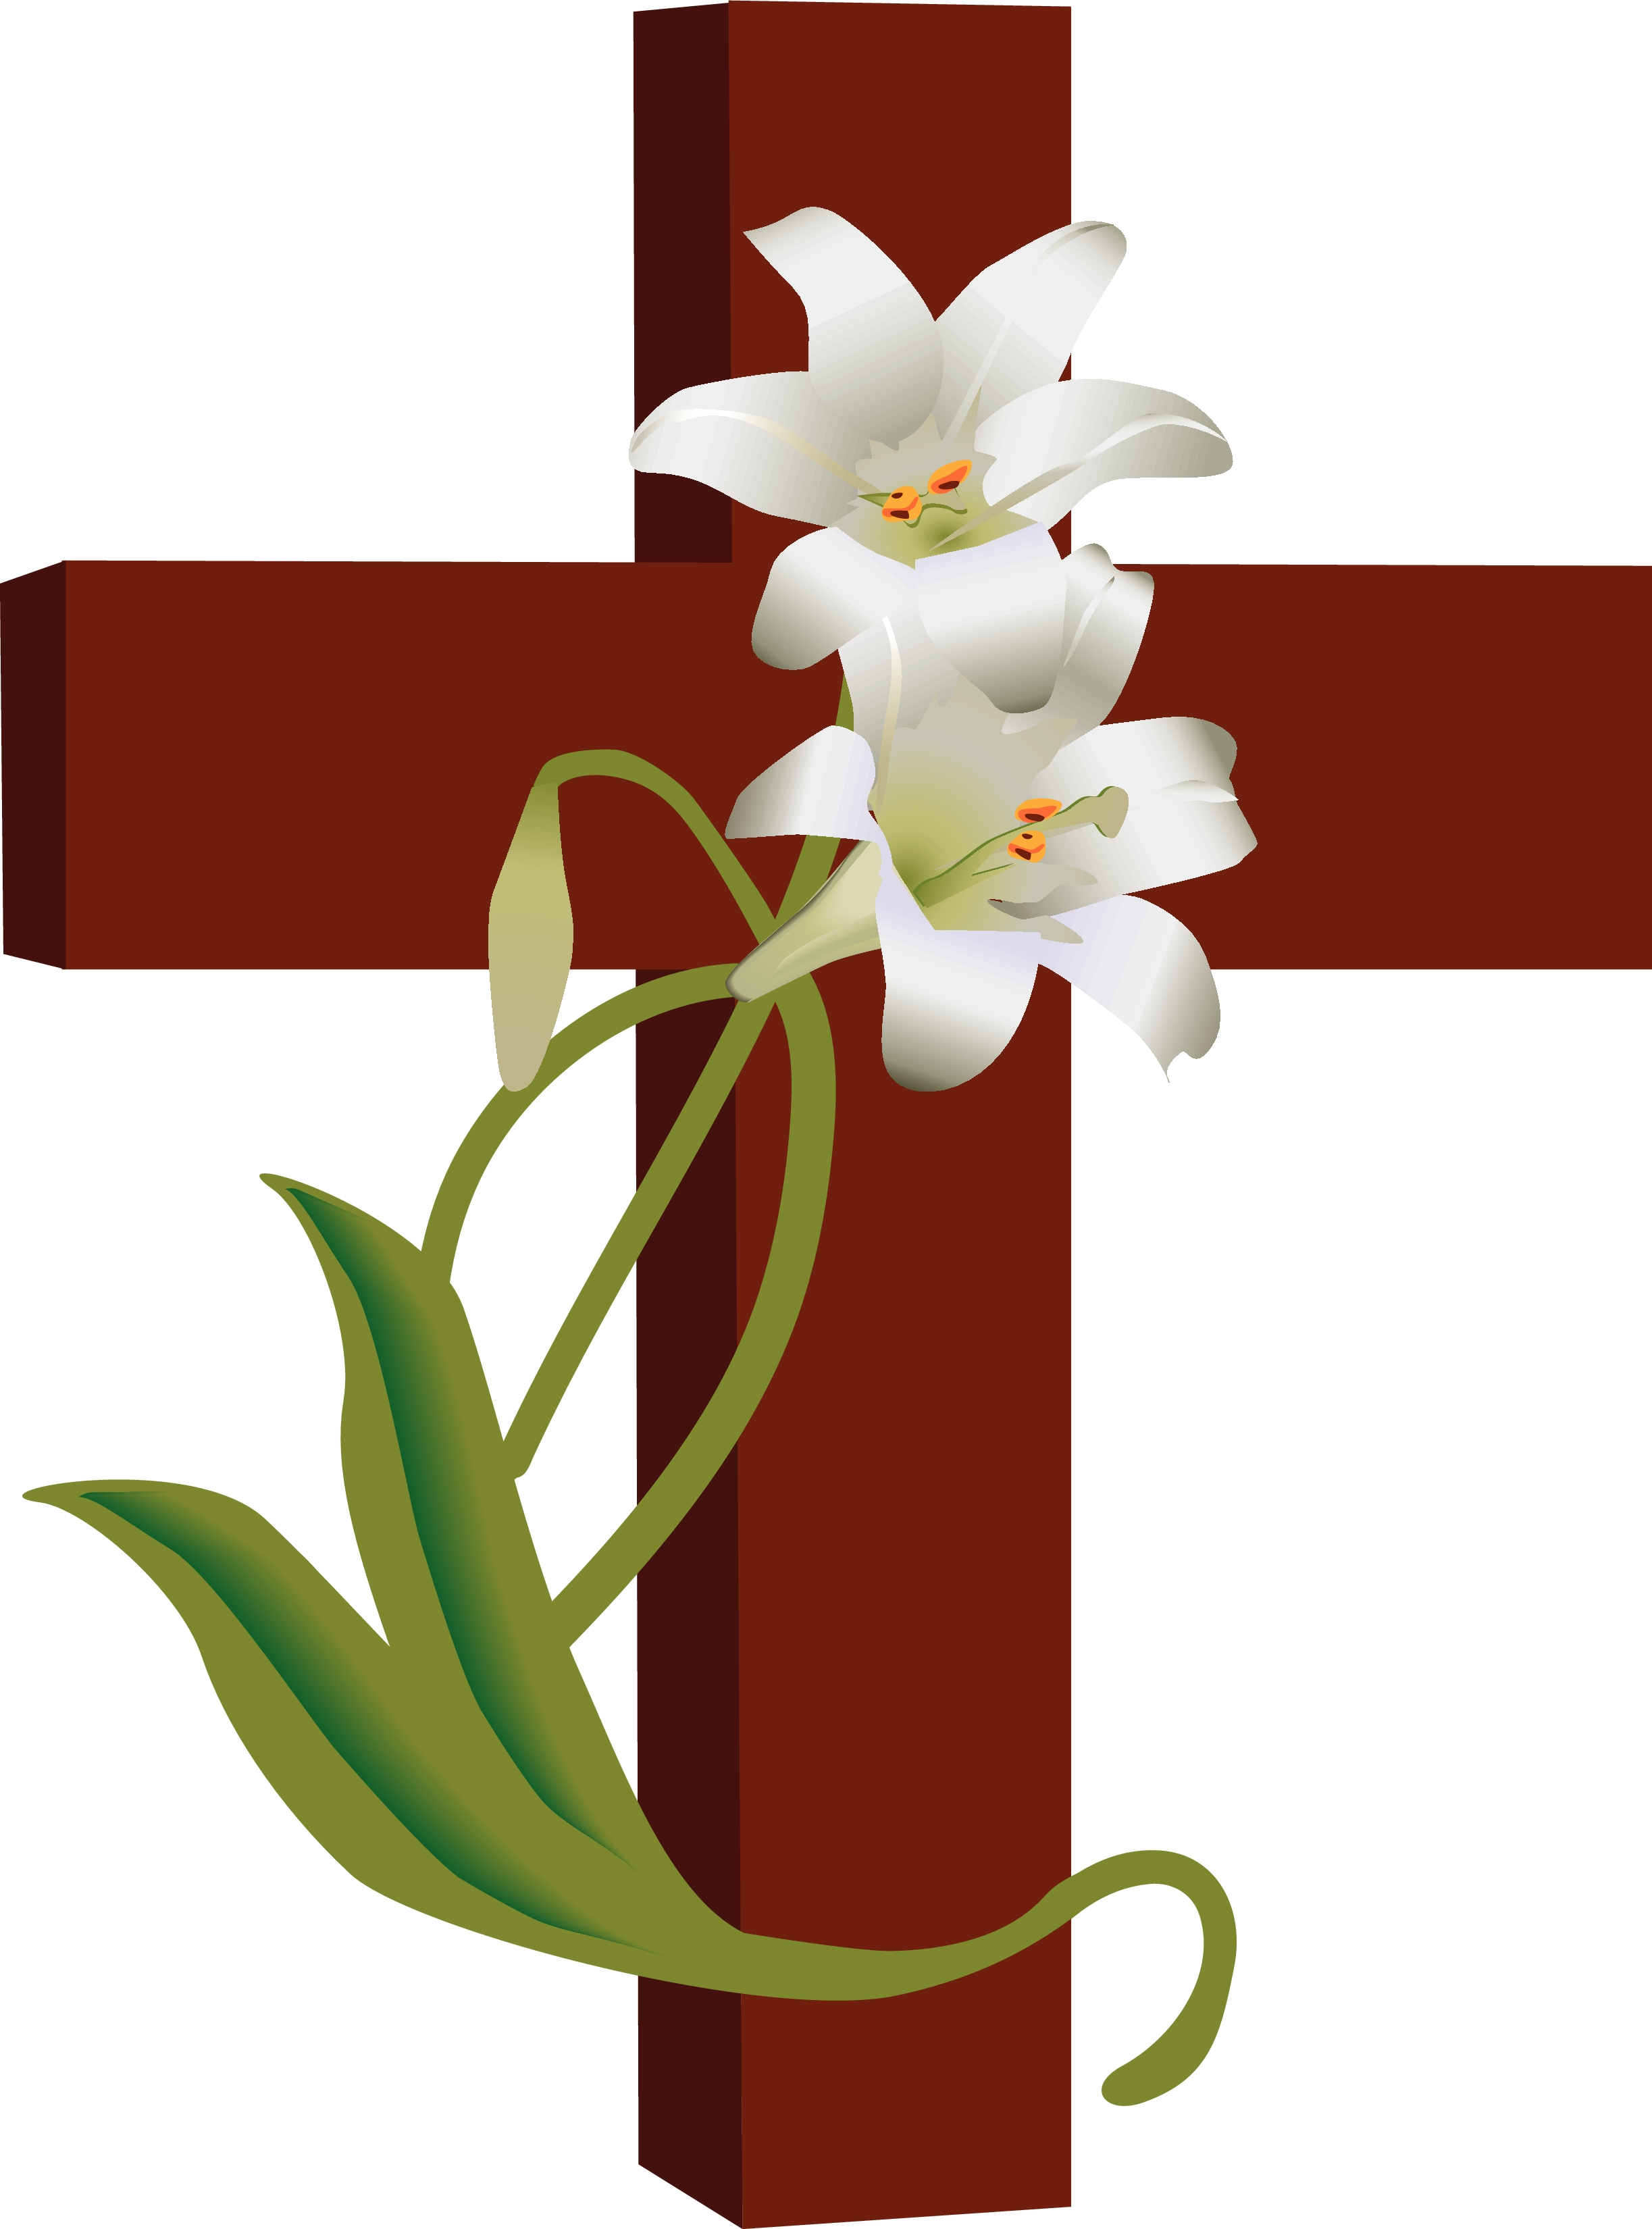 Easter lily clipart design for my visor image royalty free Free Religious Ministries Cliparts, Download Free Clip Art, Free ... image royalty free